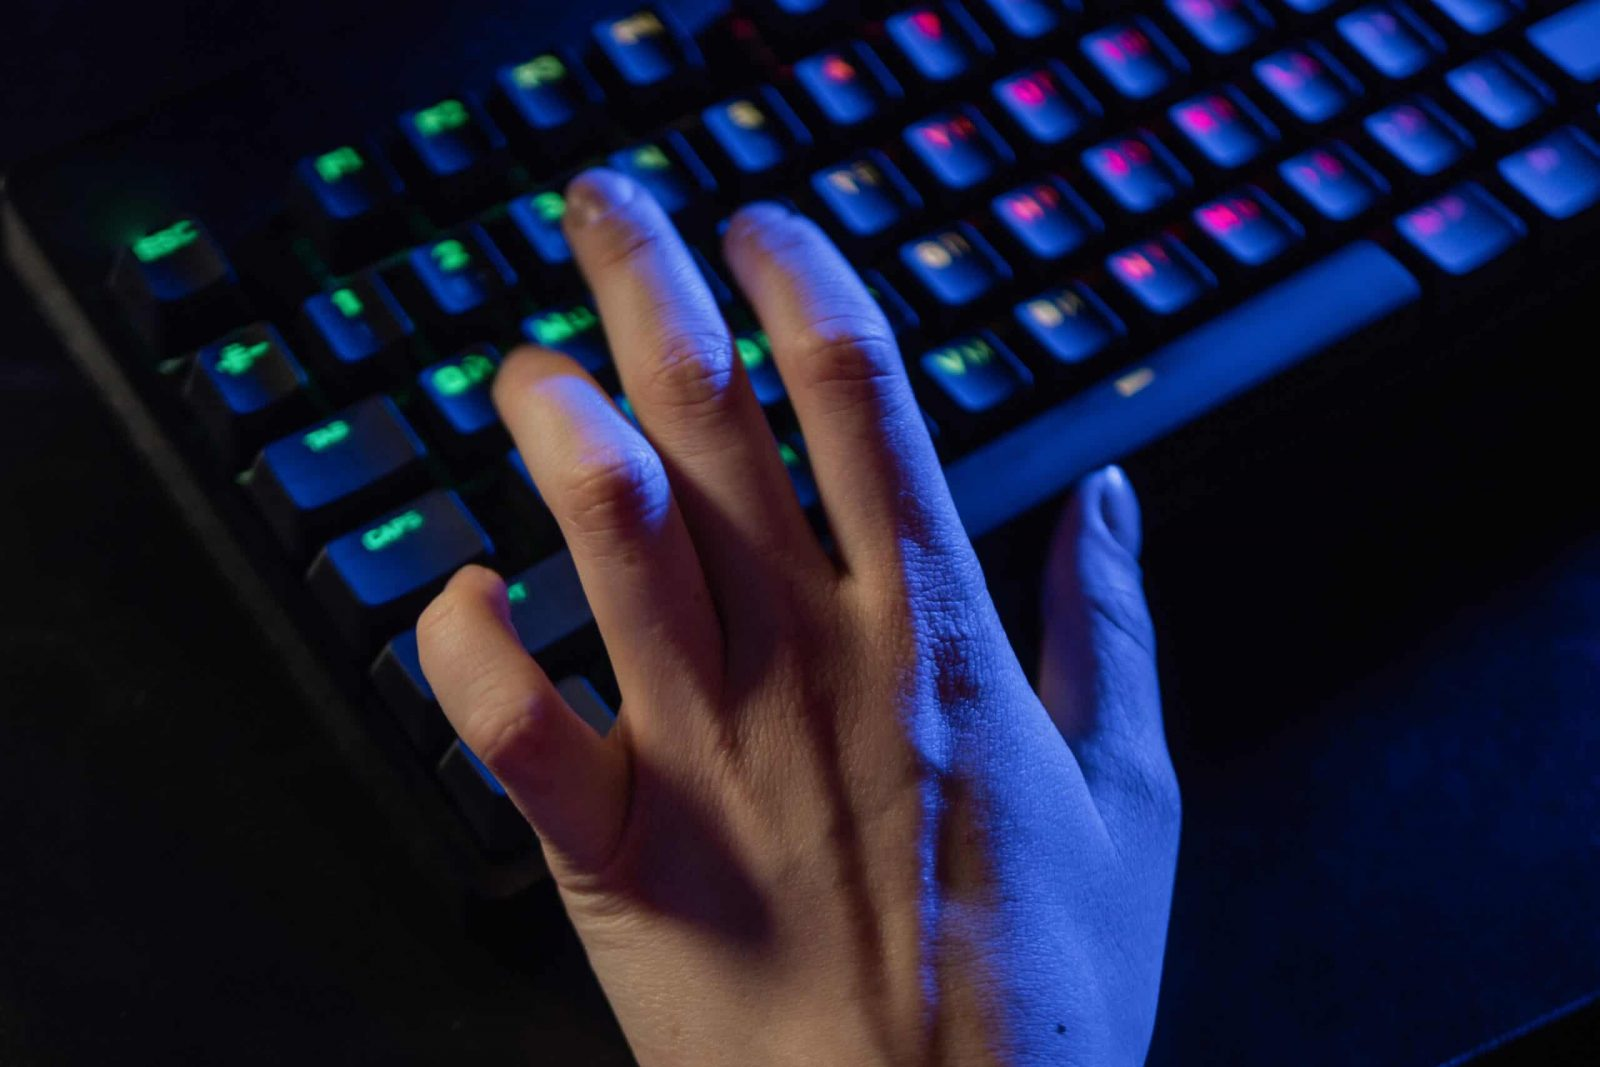 An image showing a person on a computer